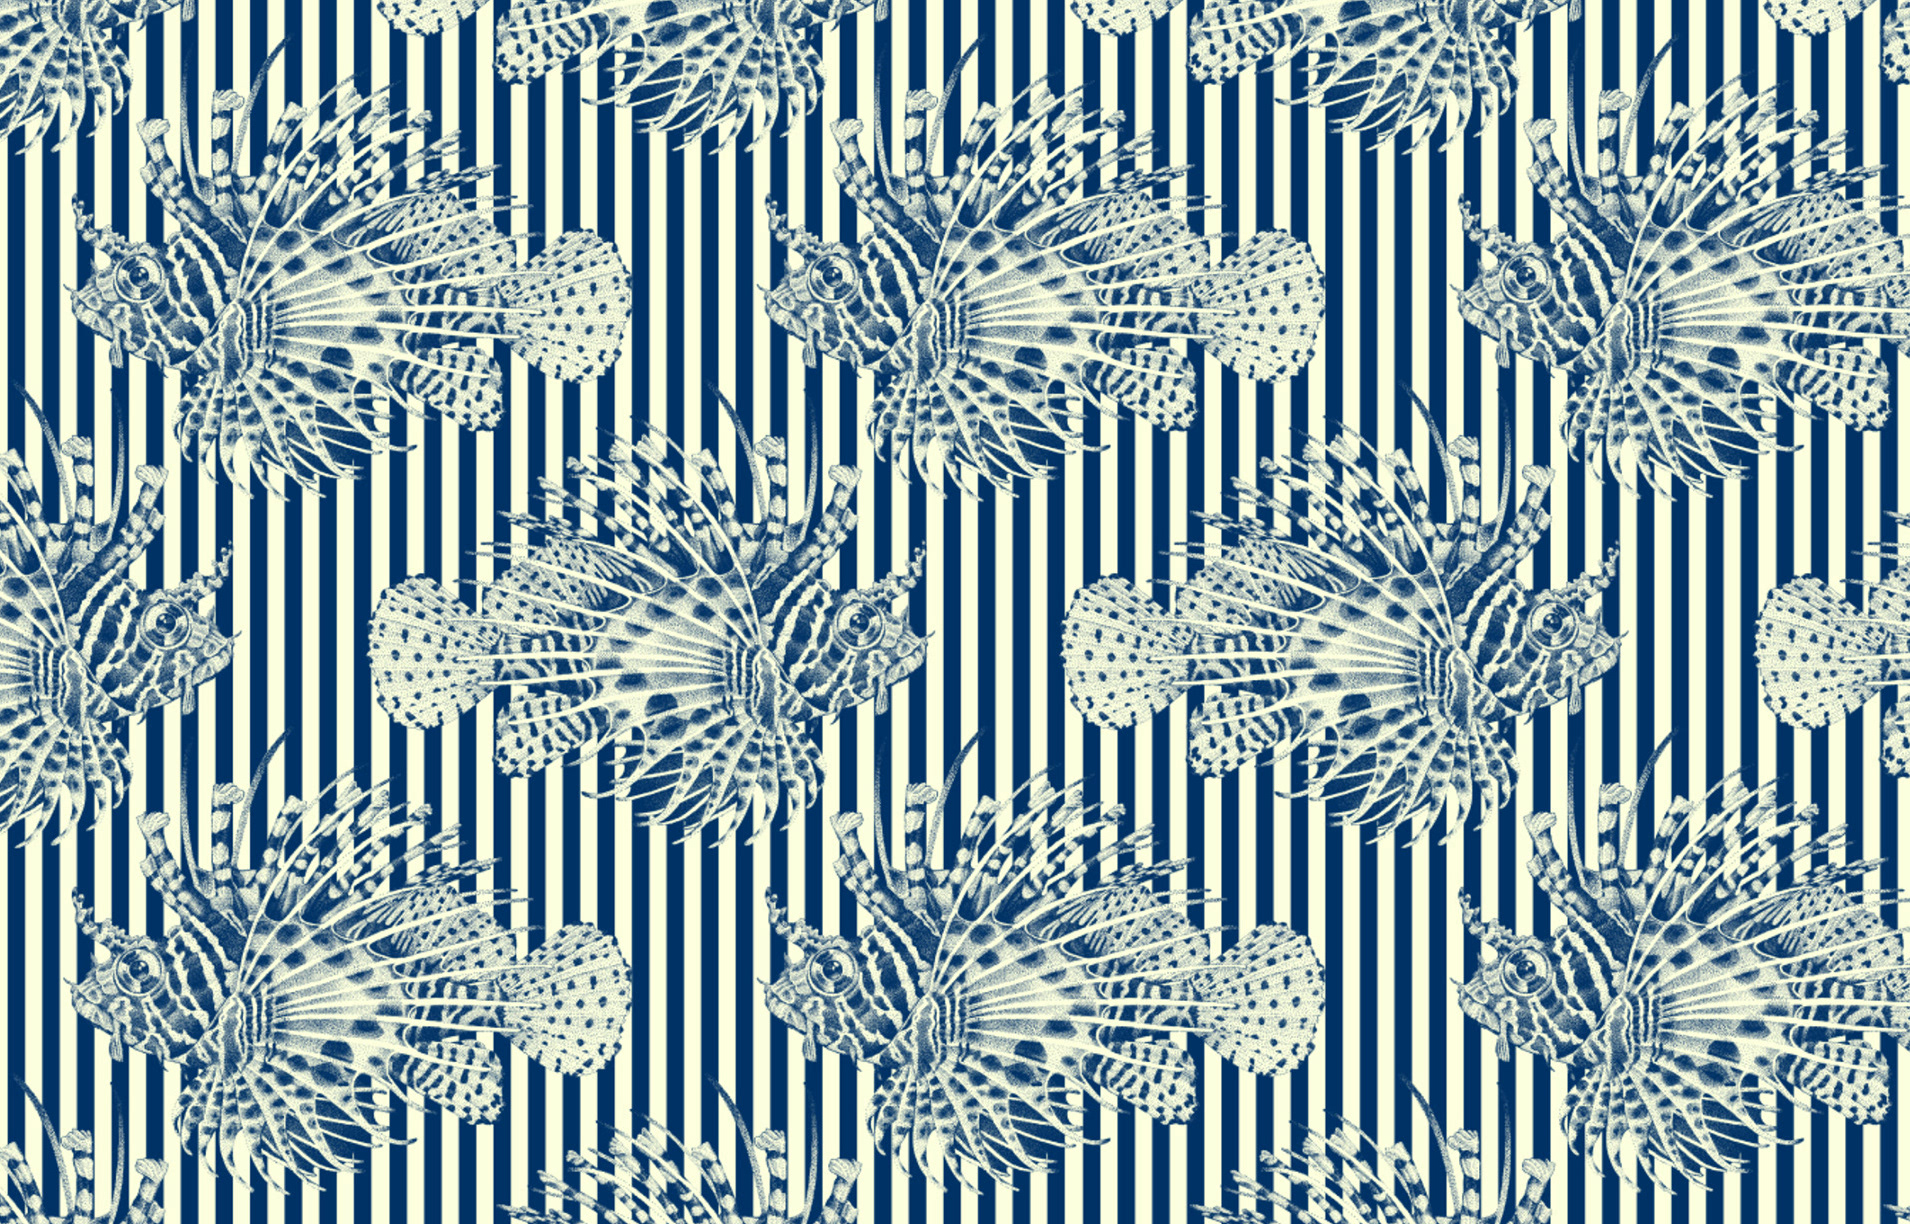 Surface Design - Abyss Collection: Traditional Pattern Structures